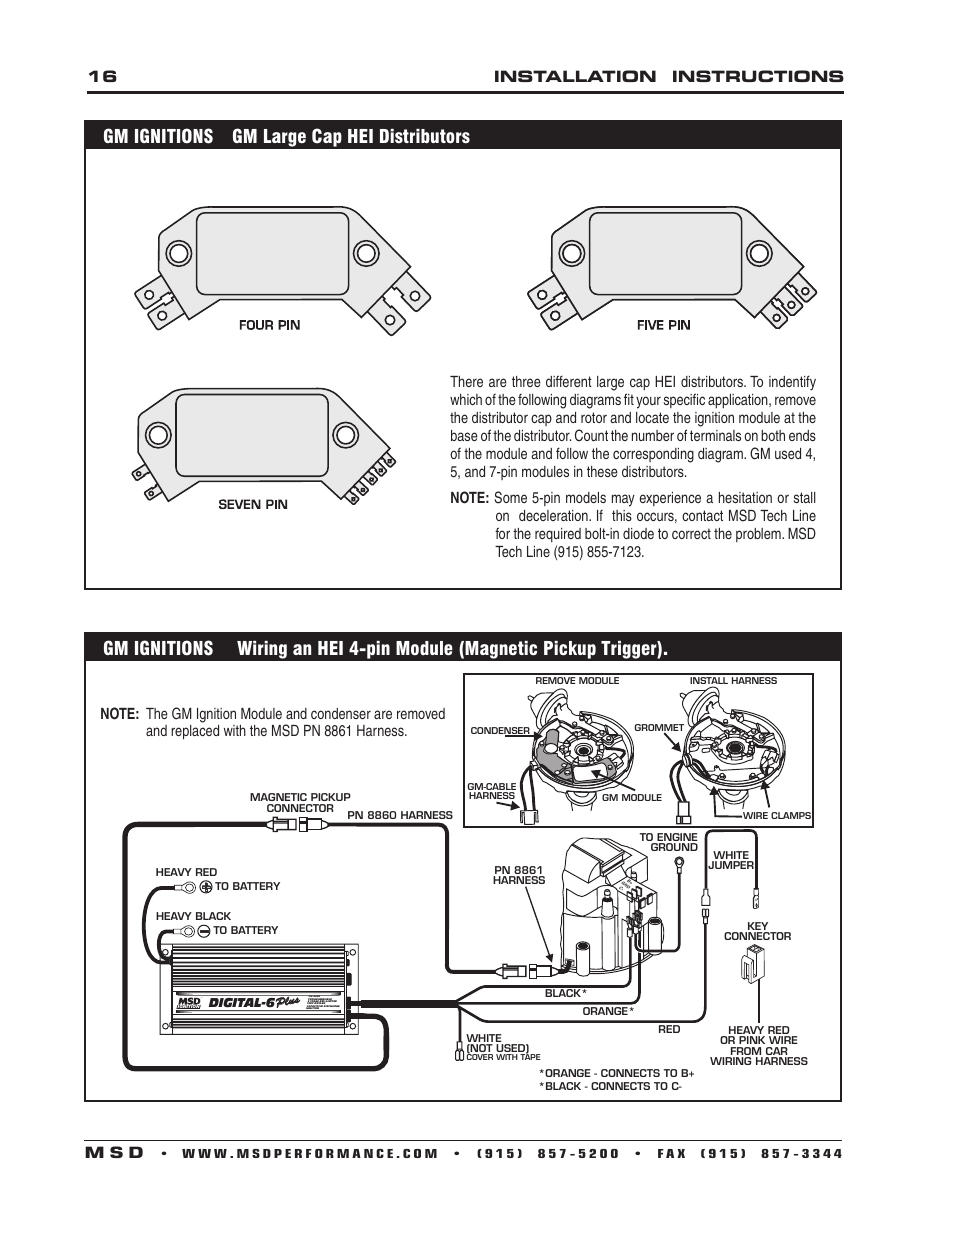 msd 6520 digital 6 plus ignition control installation page16?quality\\\\\\\\\\\\\\\\\\\\\\\\\\\\\\\=80\\\\\\\\\\\\\\\\\\\\\\\\\\\\\\\&strip\\\\\\\\\\\\\\\\\\\\\\\\\\\\\\\=all wiring diagram for msd 6al ready to run msd ignition \u2022 free wiring msd digital 6 wiring diagram at readyjetset.co